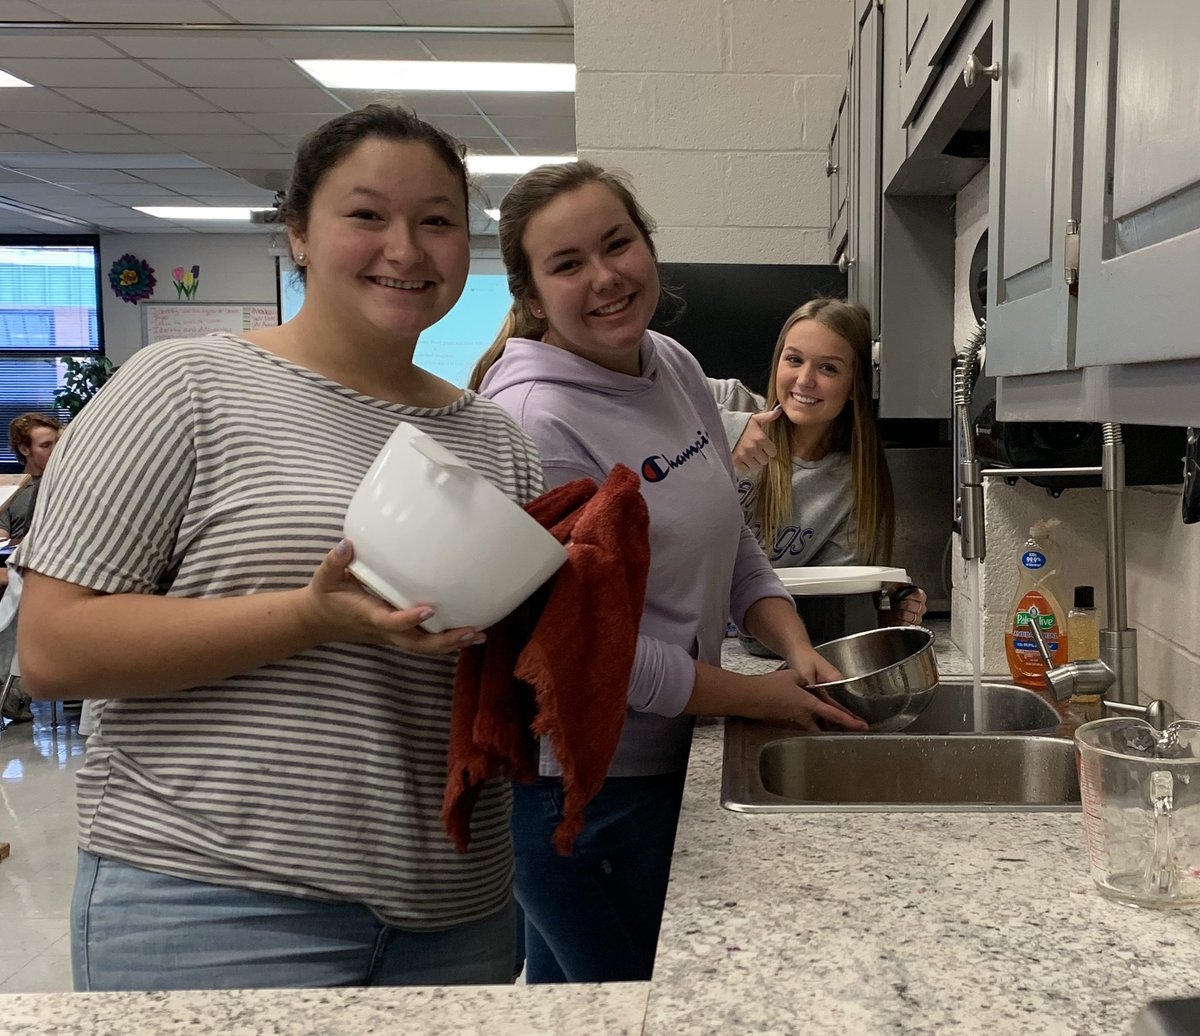 We had a great day completing our first food lab of the year in Nutrition classes! We made Pasta Salad while practicing kitchen safety procedures and knife handling techniques! #seizetheday @DCcougarnation @raylecomte <br>http://pic.twitter.com/cdhfOMY37v